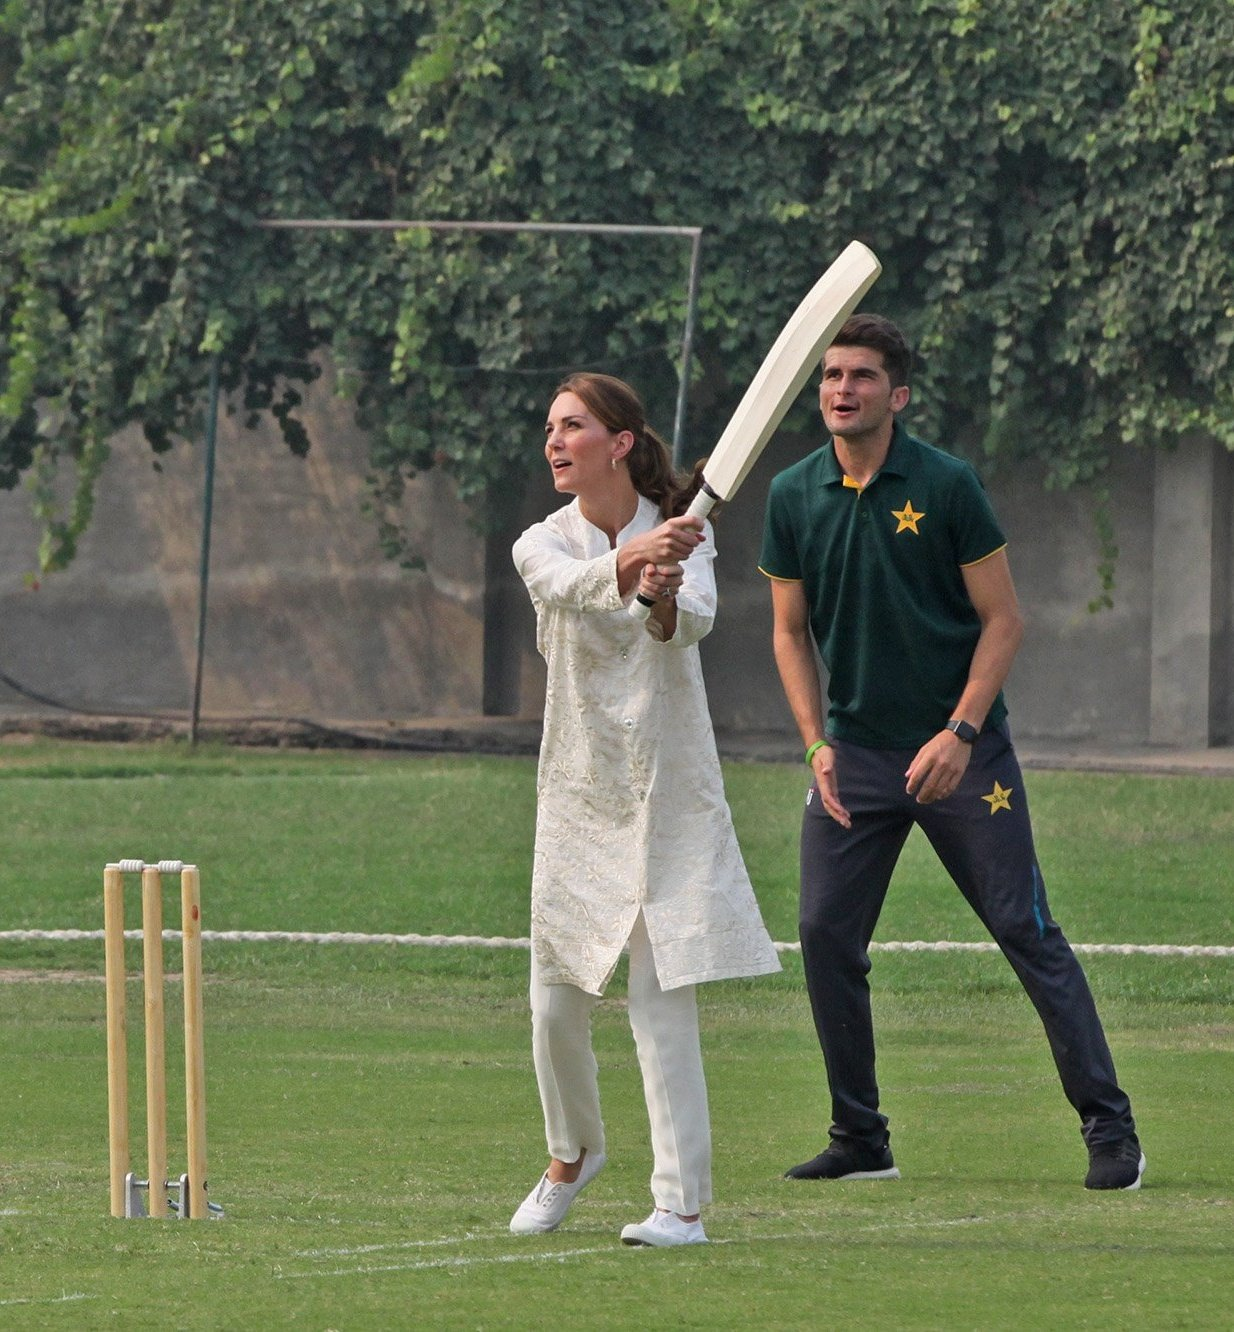 Princess Kate Middleton is enjoying cricket at National Cricket Academy, Lahore.